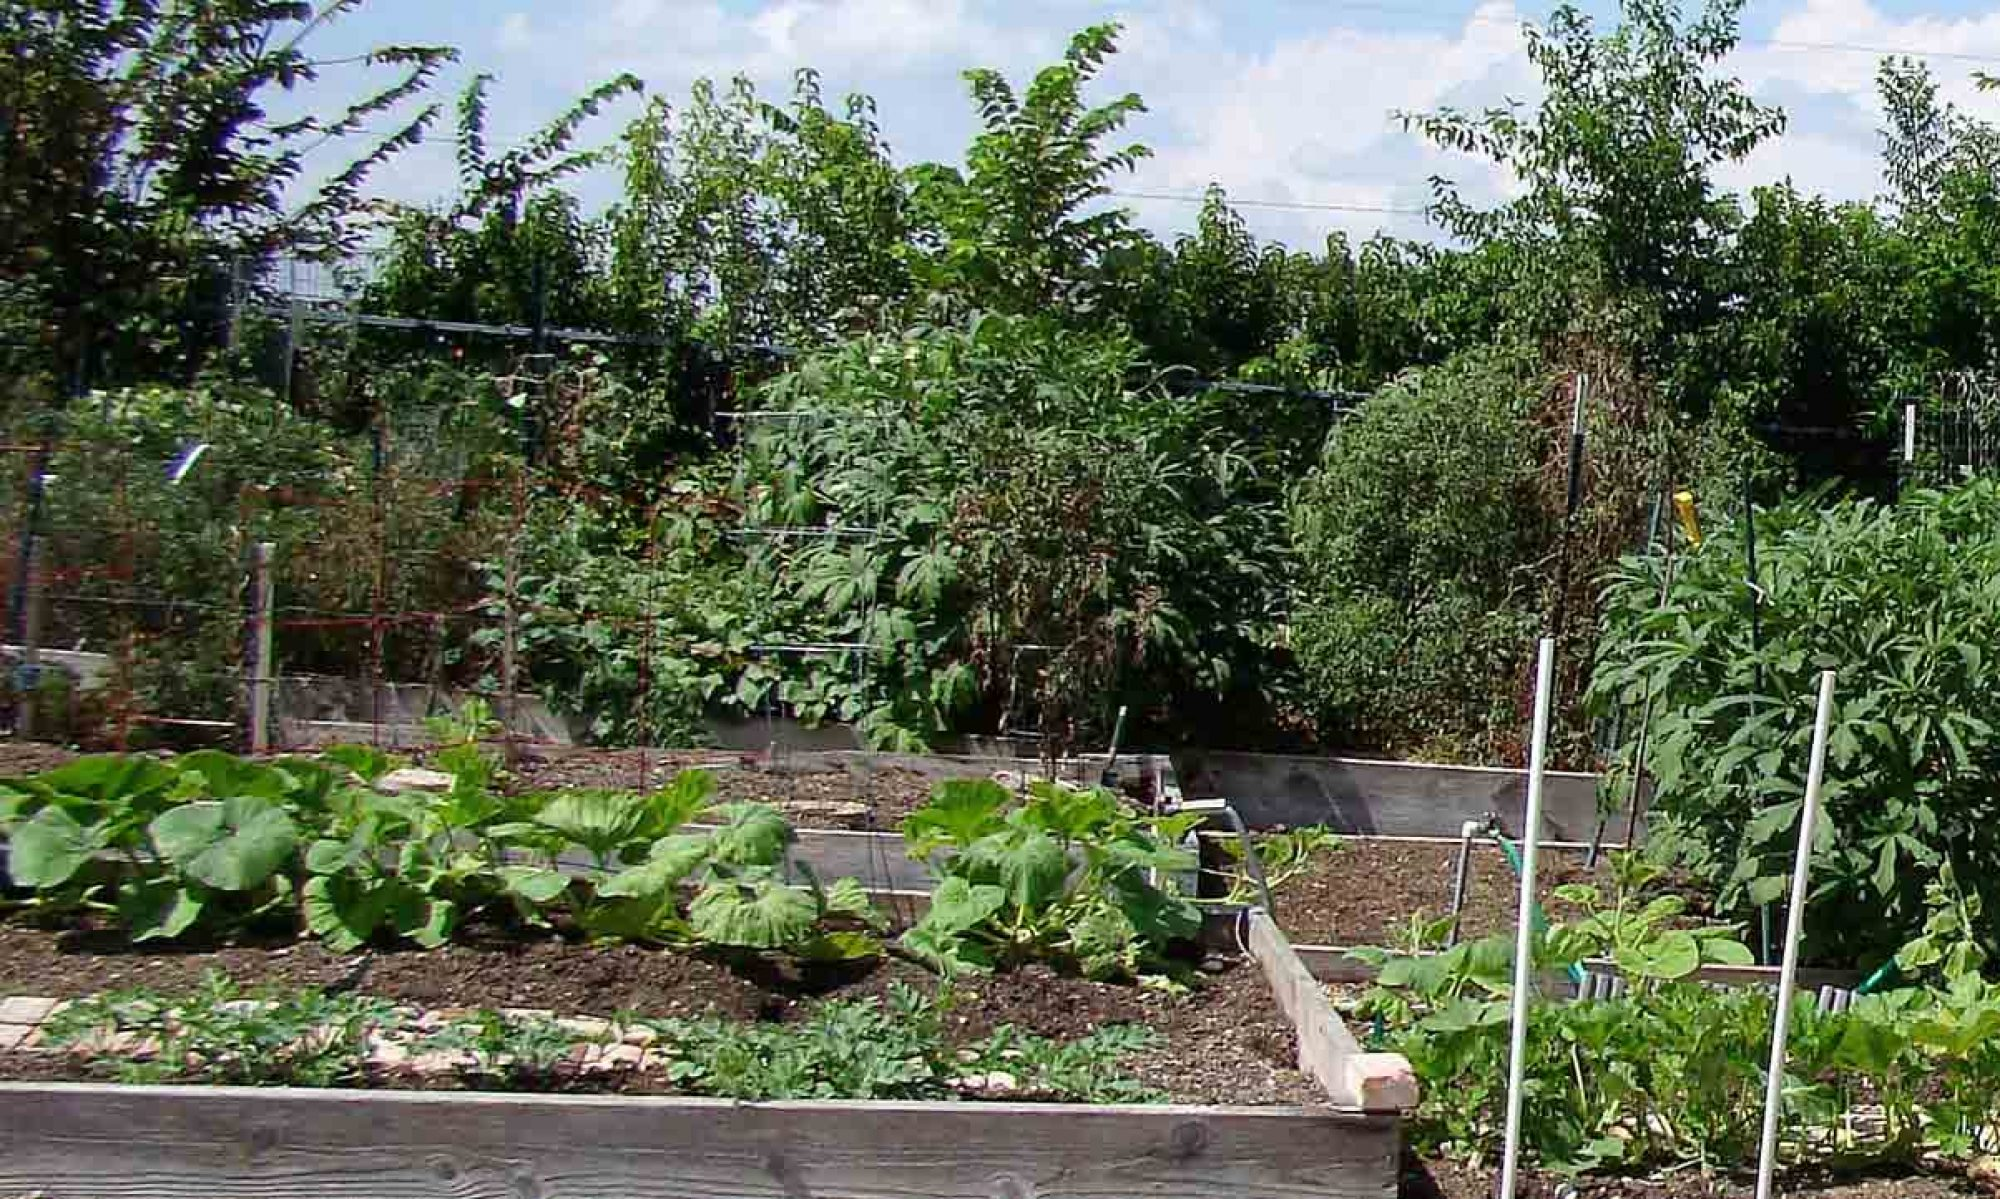 Gardens - Lake Highlands Community Garden